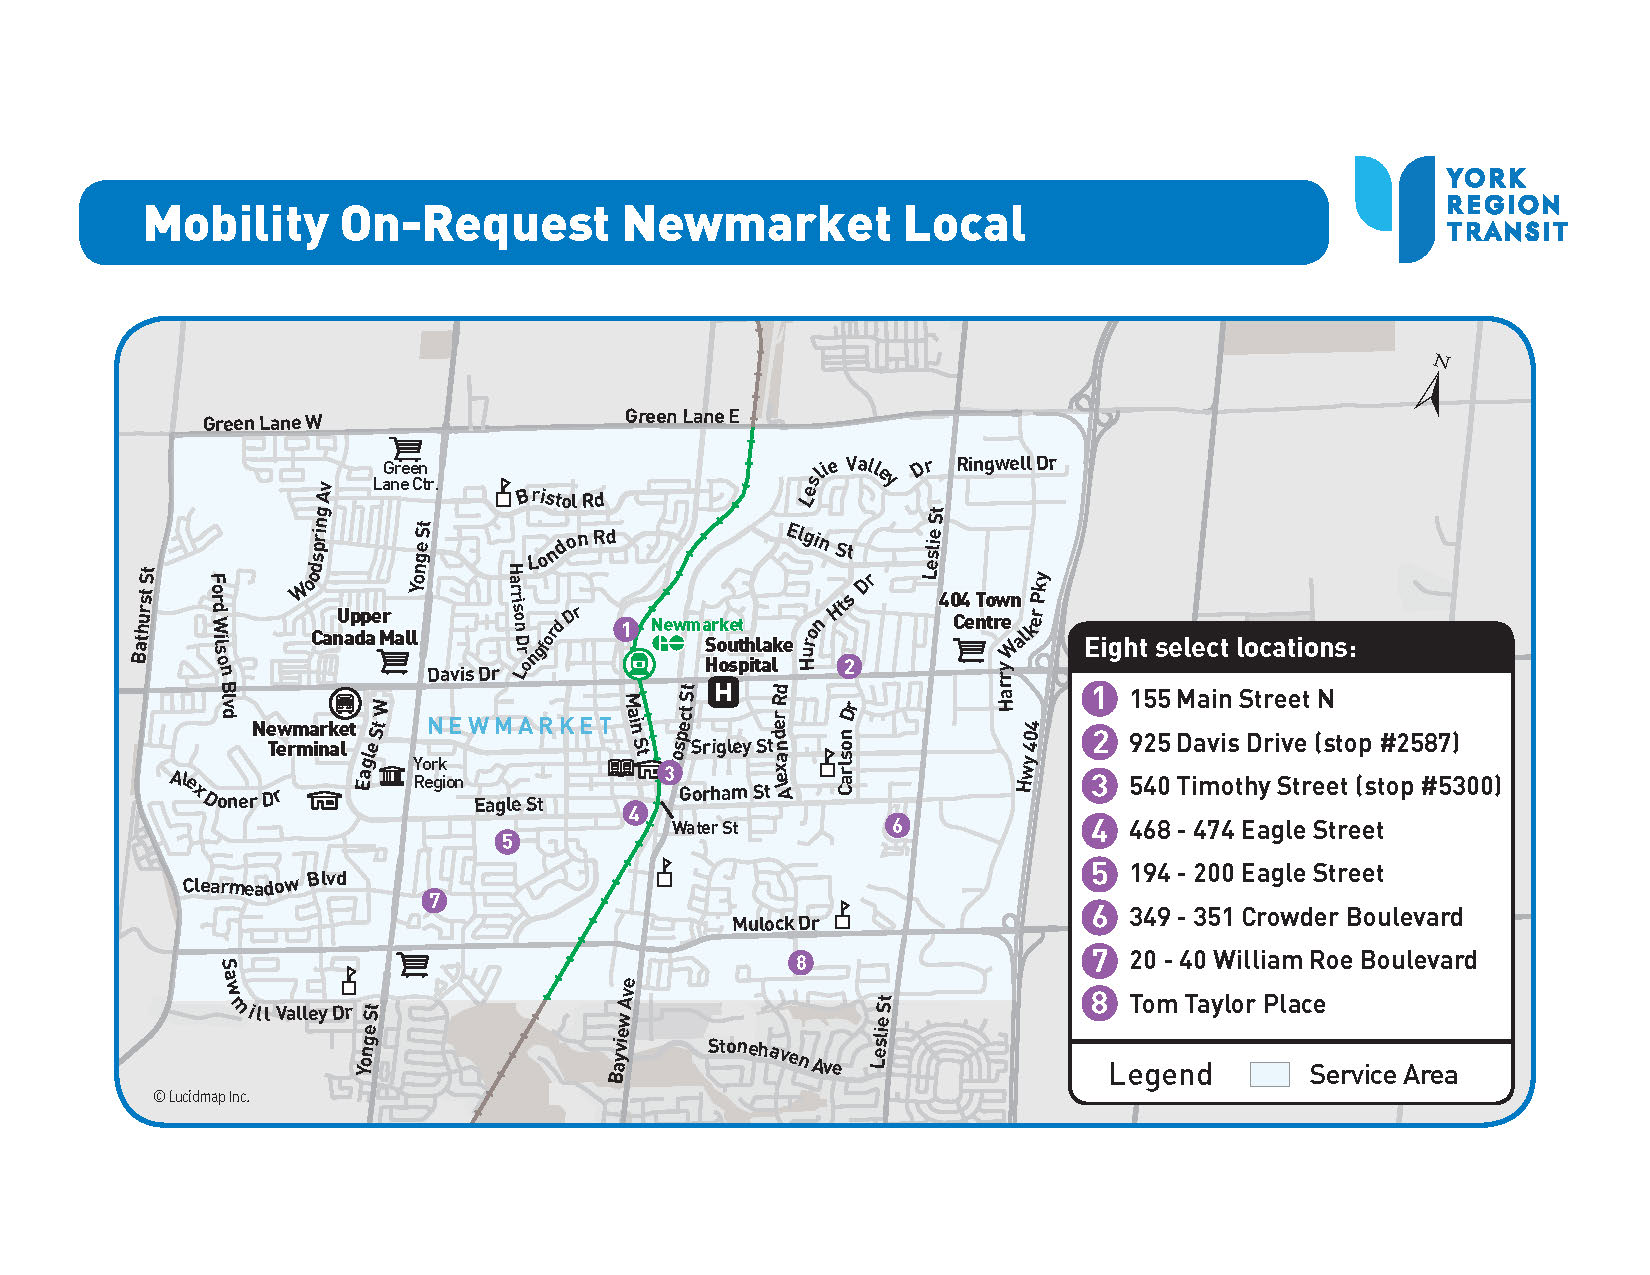 MOR Newmarket Local service area map